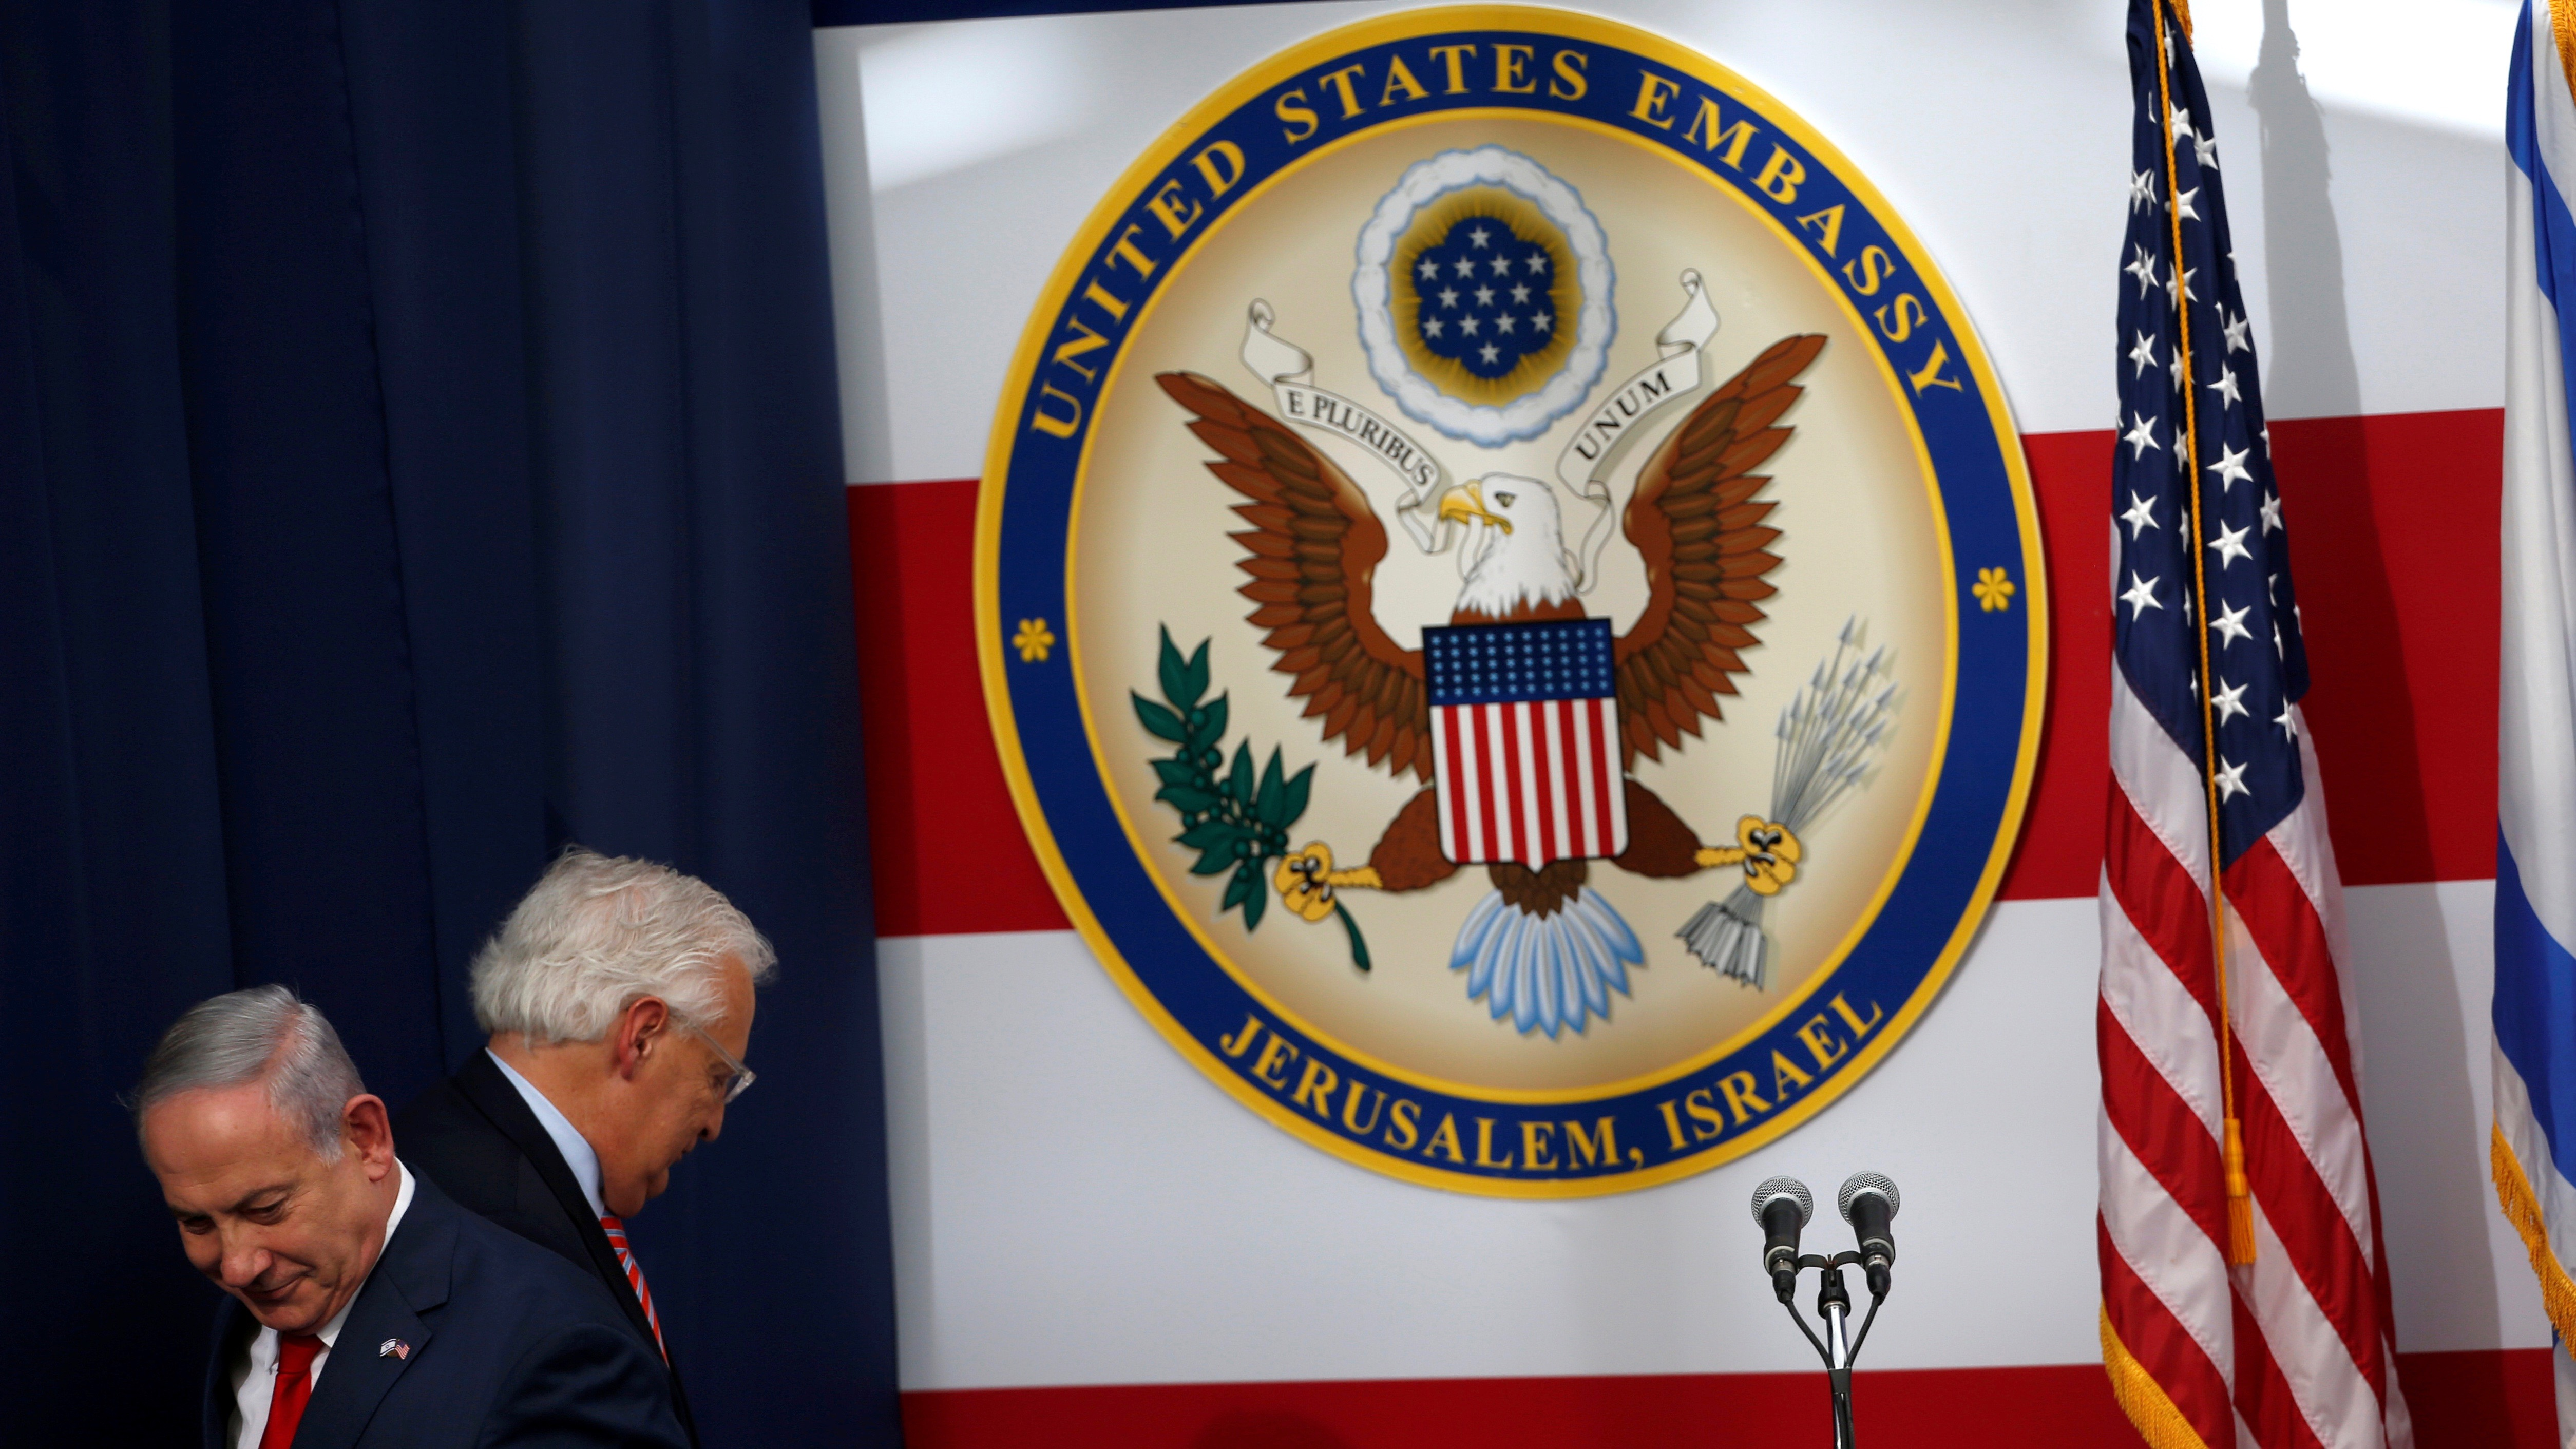 Ambassador to Israel, at the dedication ceremony of the new American embassy in Jerusalem, May 14.